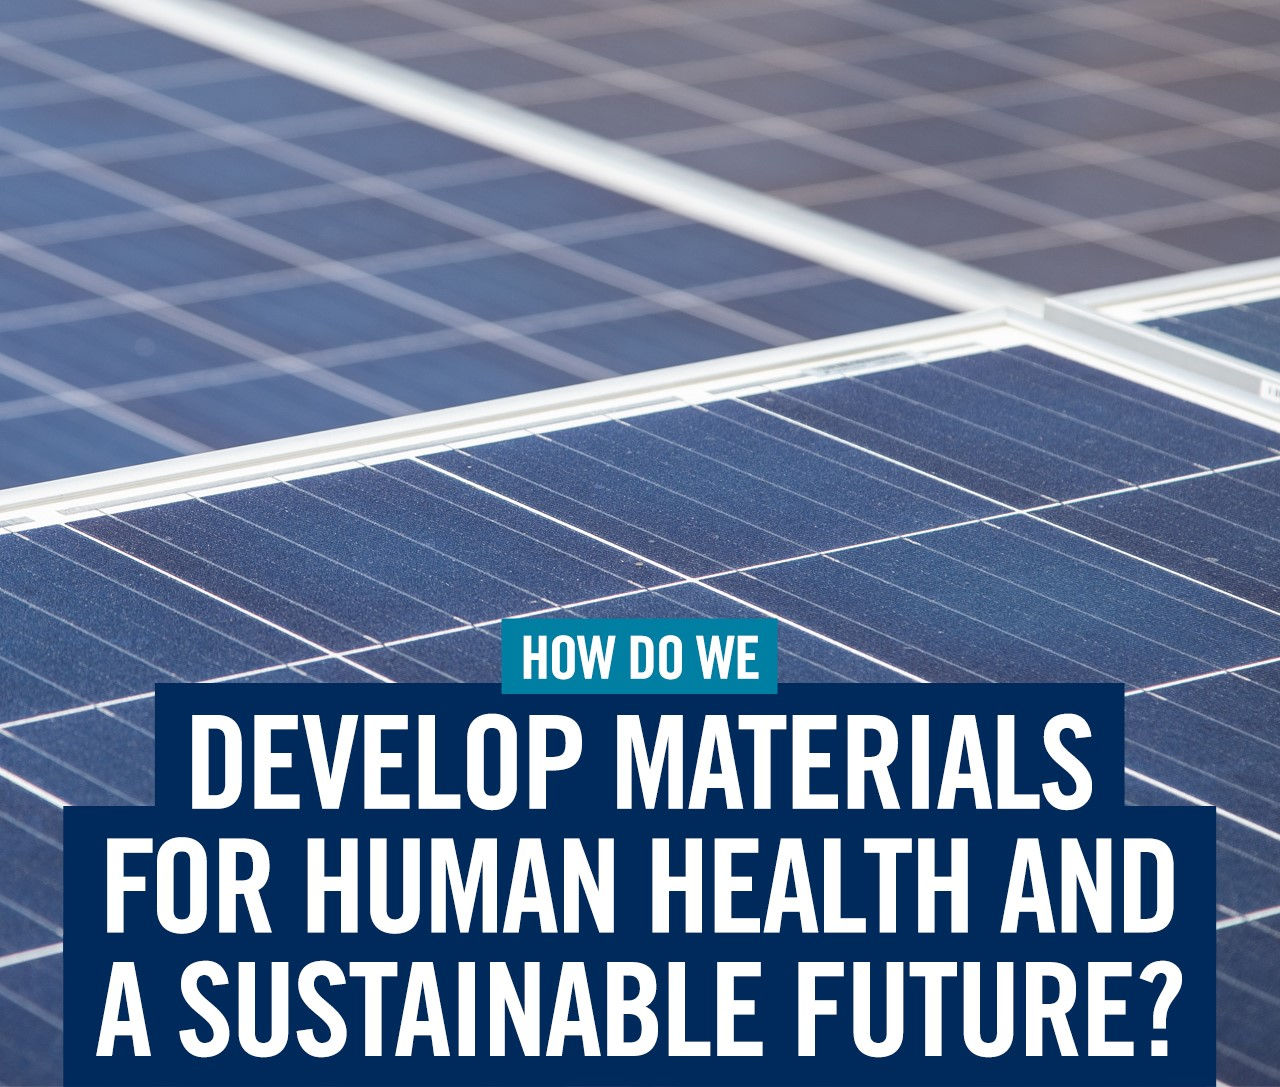 How do we develop materials for human health and a sustainable future?